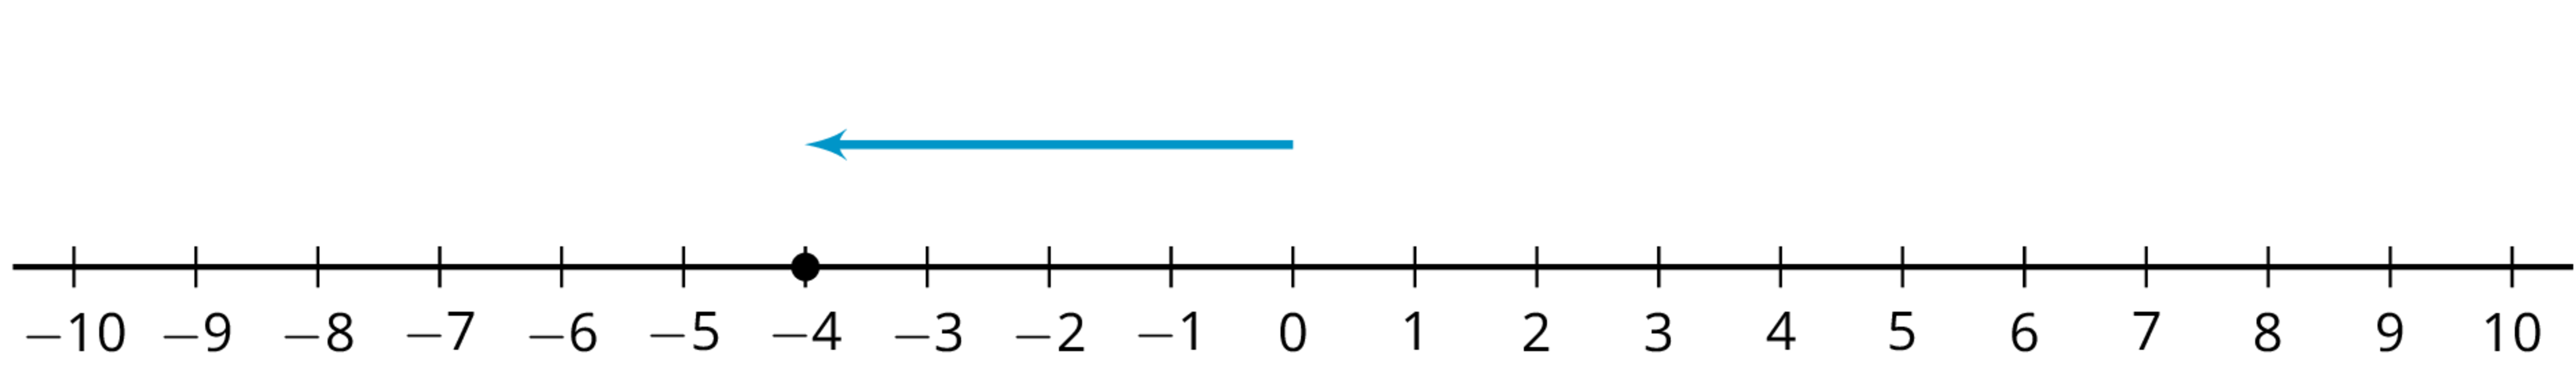 A number line with the numbers negative 10 through 10 indicated. An arrow starts at 0, points to the left, and ends at negative 4.There is a solid dot indicated at 4.